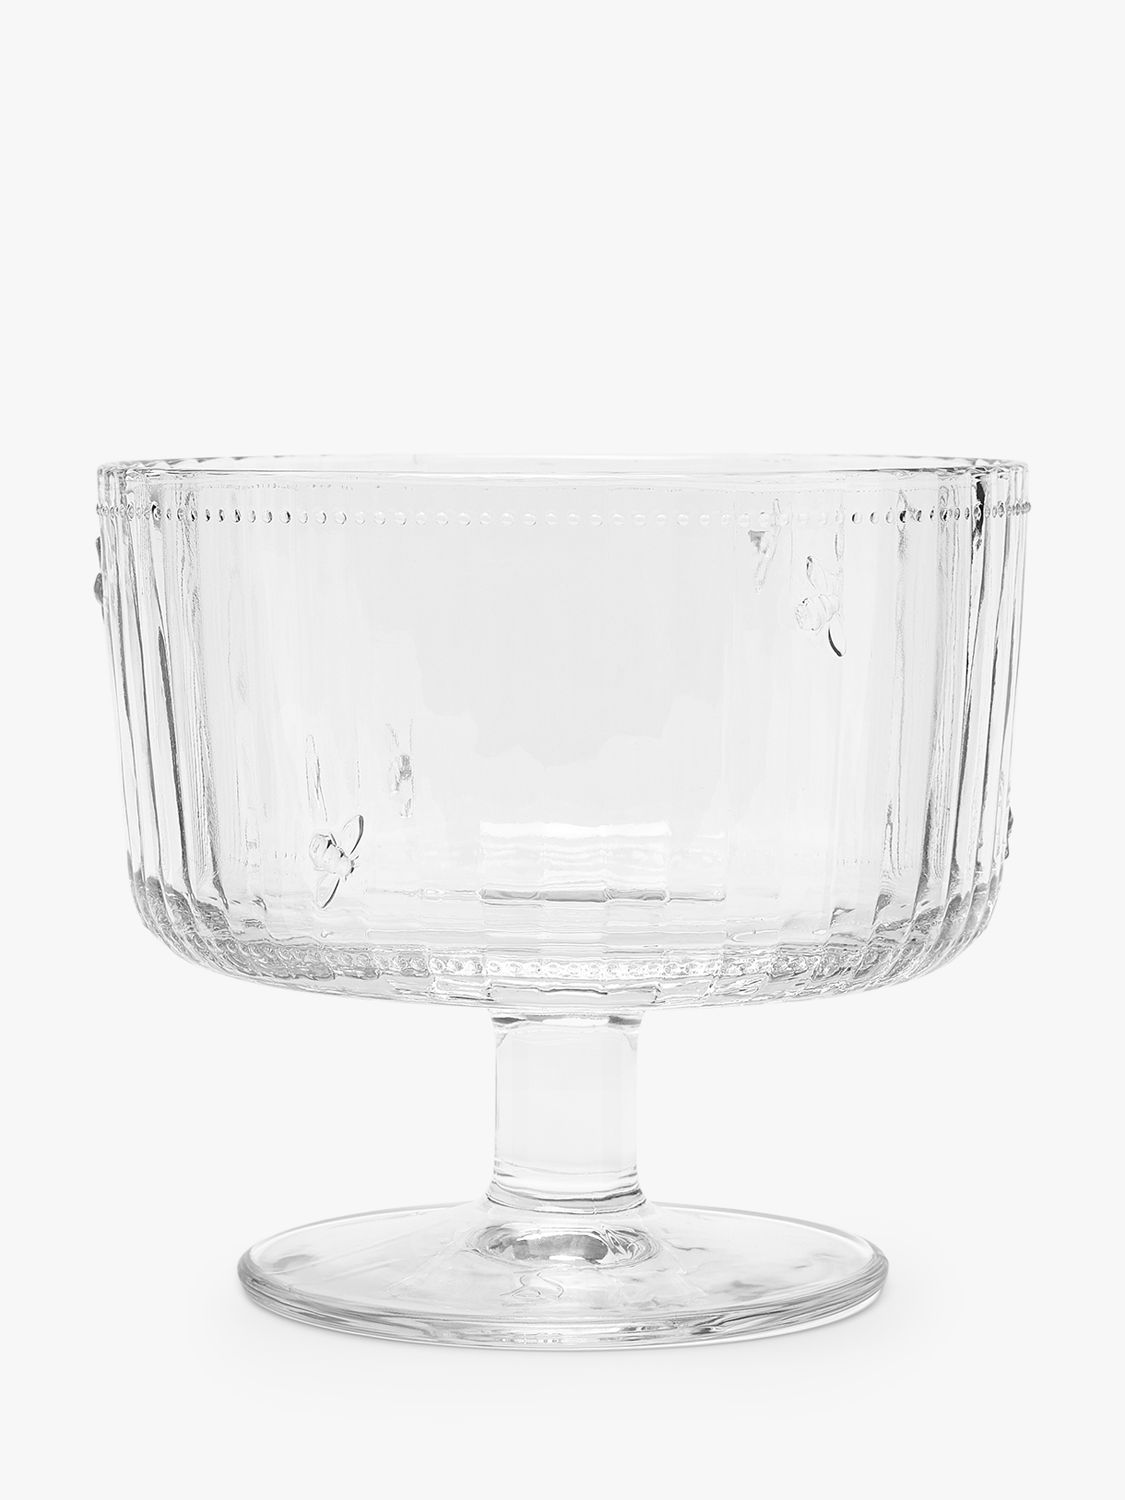 Joules Joules Bee Footed Glass Serving Bowl, 19cm, Clear